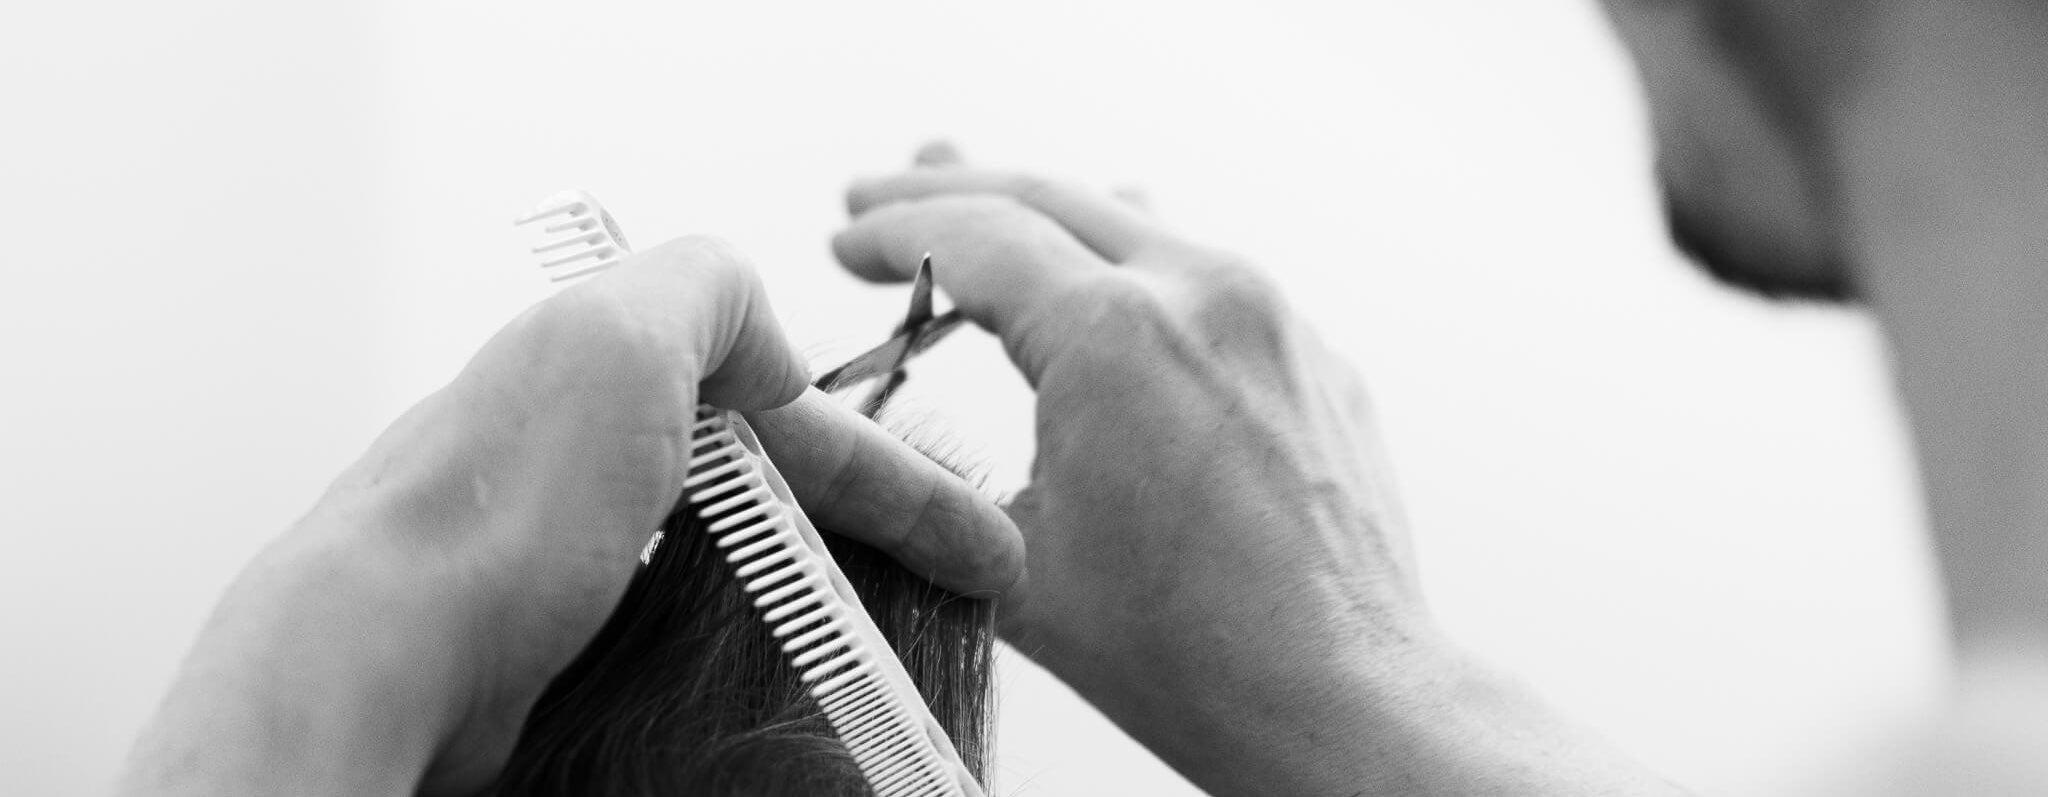 Hair being cut with scissor and comb